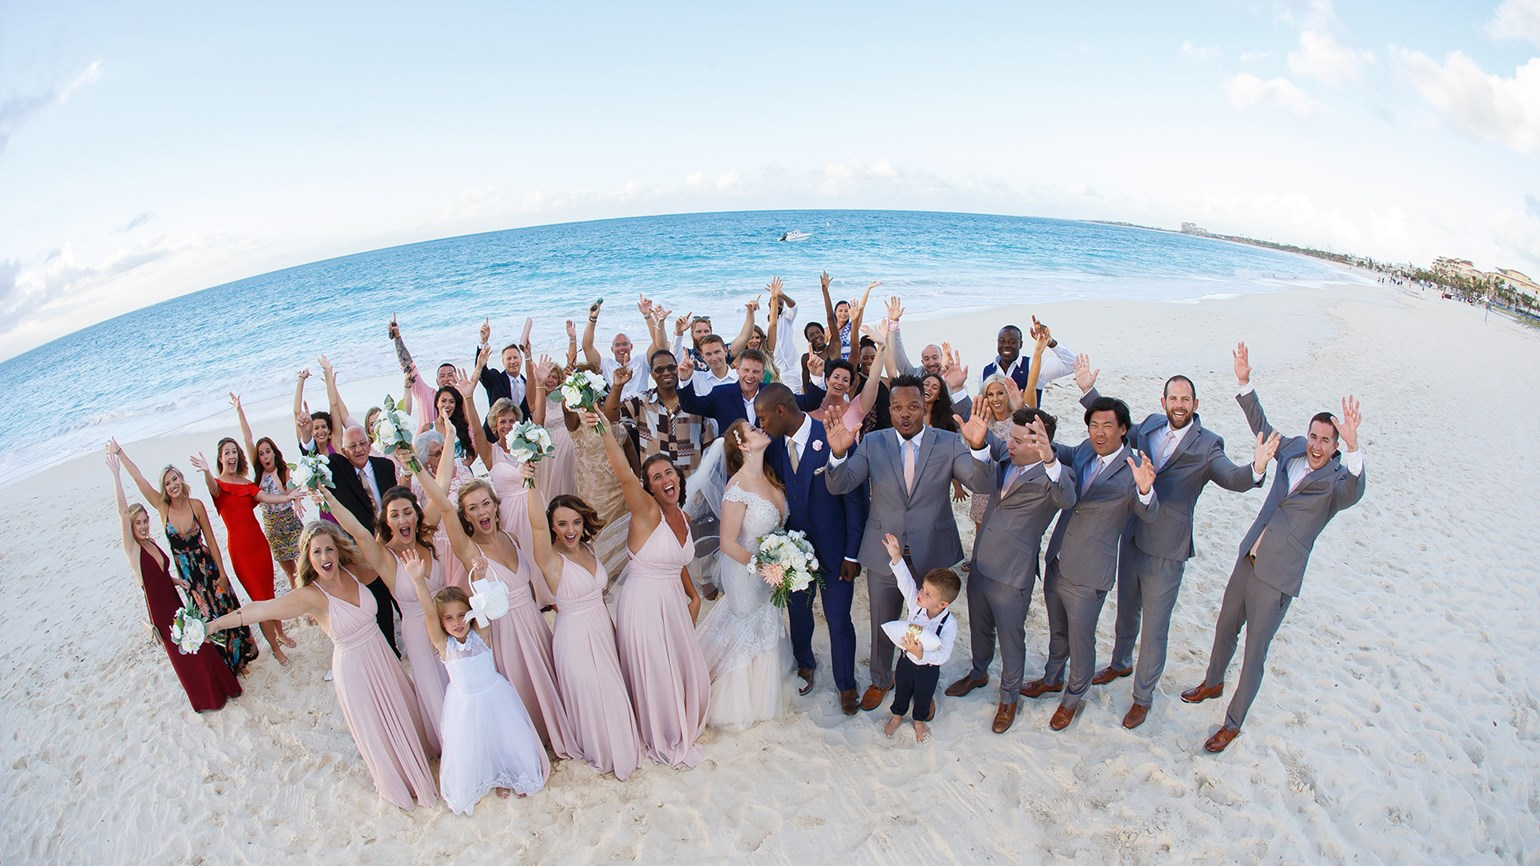 The Turks Caicos Celebrated Its First Post Hurricanes Destination Wedding At Seven Stars Resort Spa On Grace Bay Photo Credit Brilliance Studios